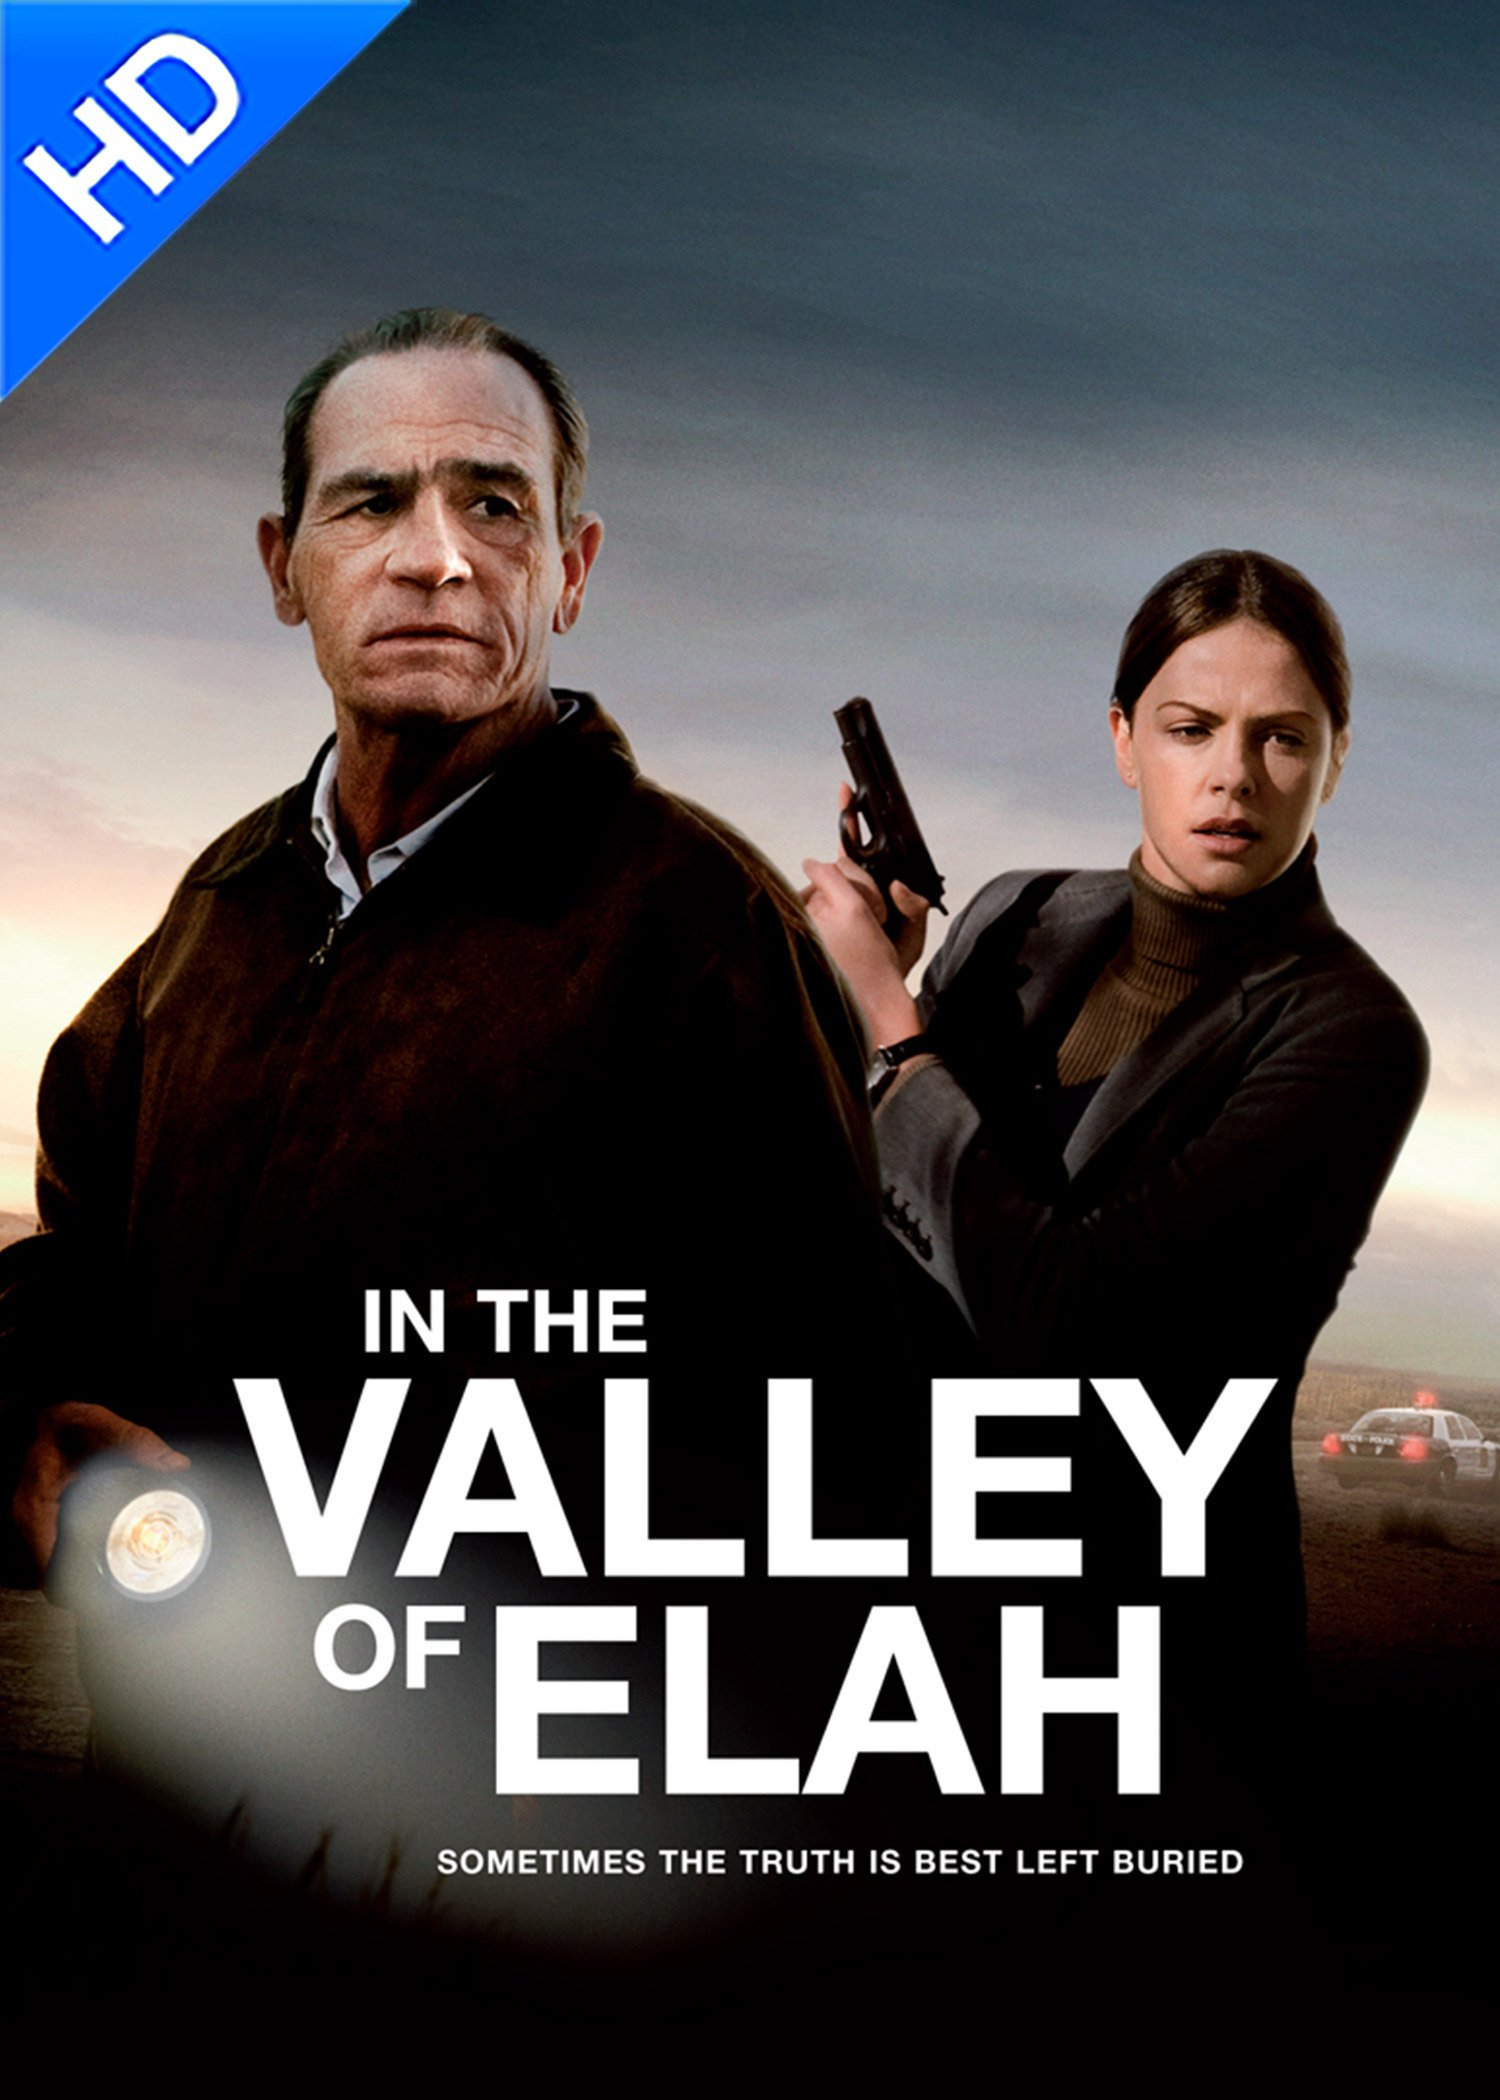 in-the-valley-of-elah